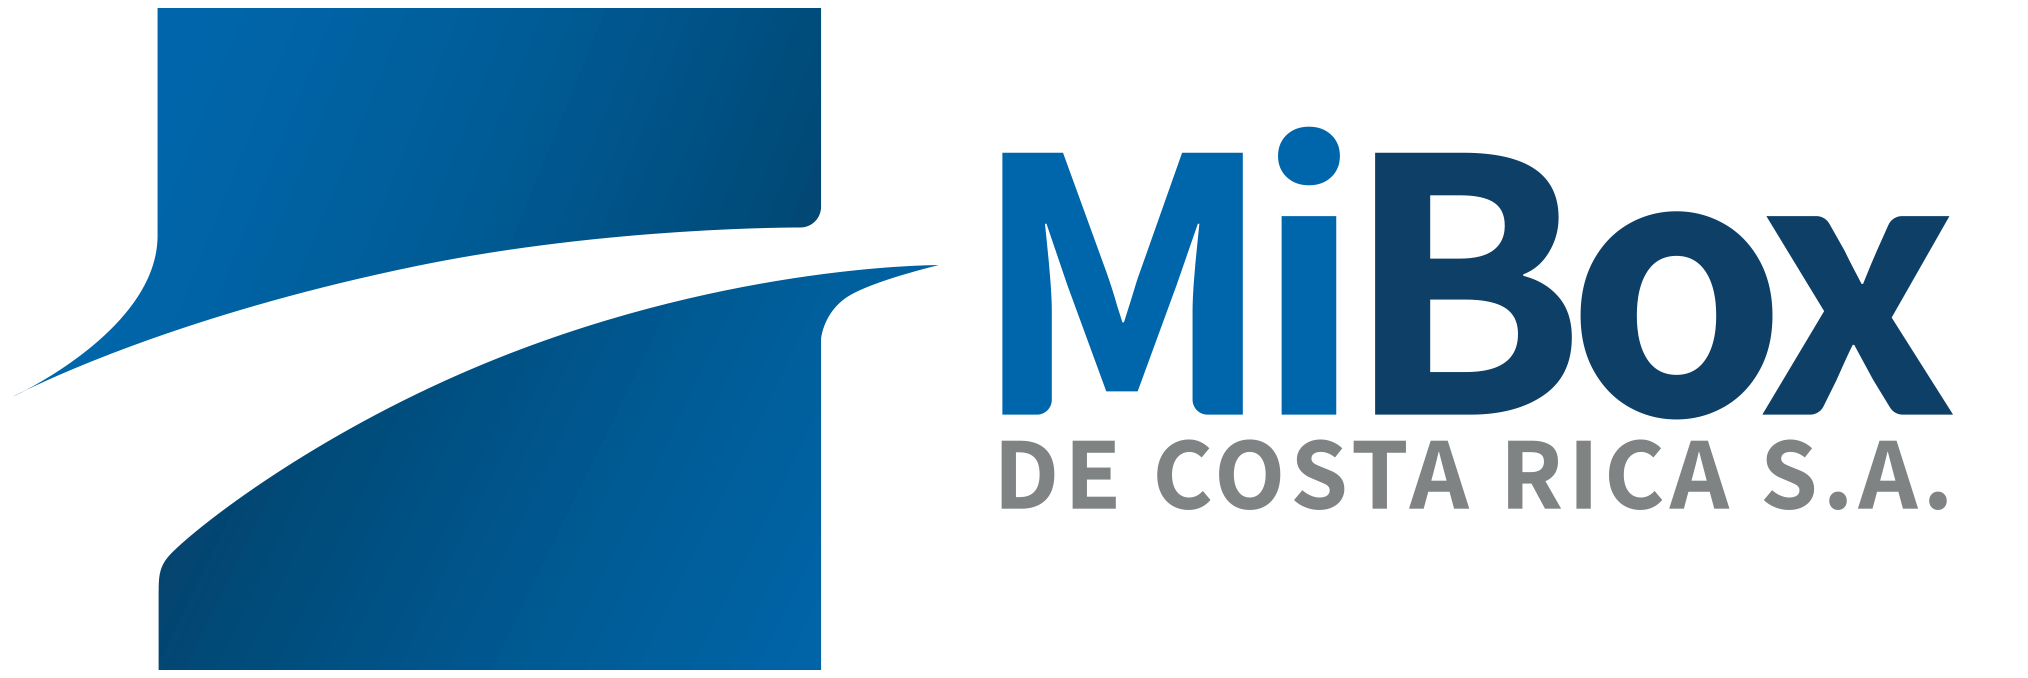 MiBox de Costa Rica